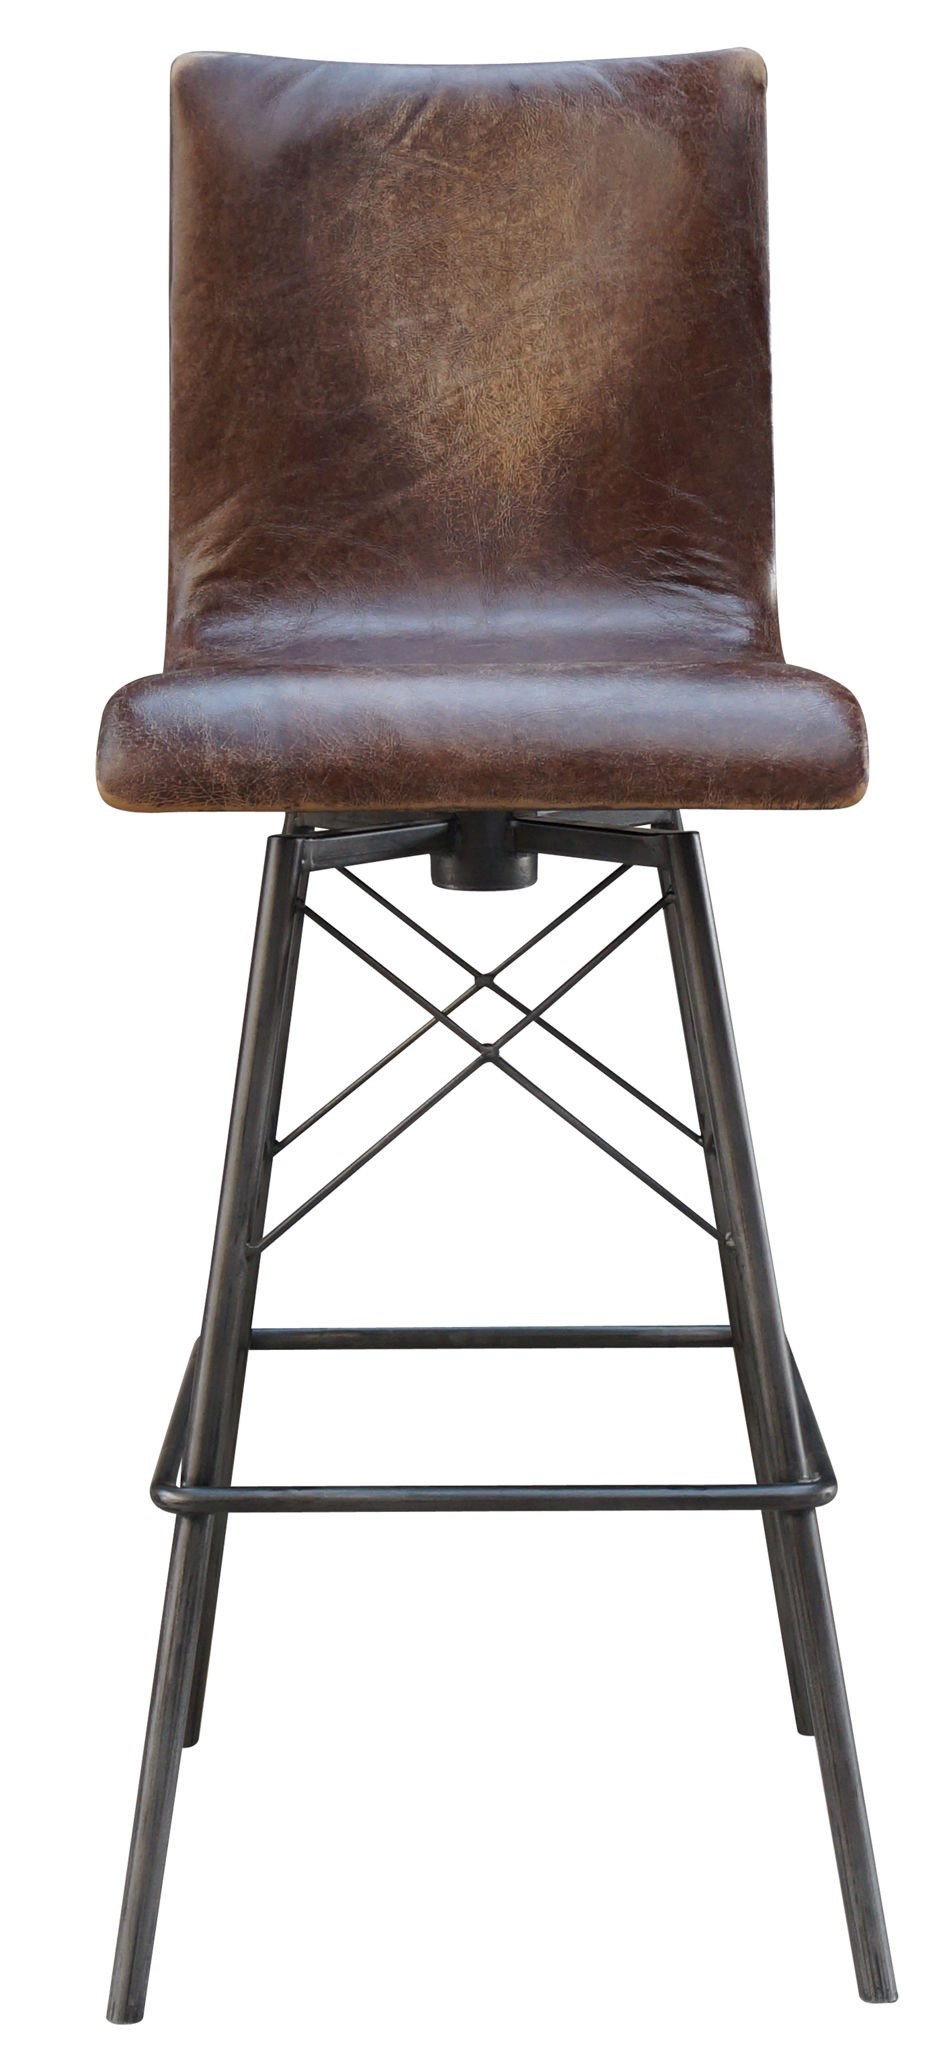 Super Jenna Swivel Leather Bar Stool Mecox Gardens Unemploymentrelief Wooden Chair Designs For Living Room Unemploymentrelieforg